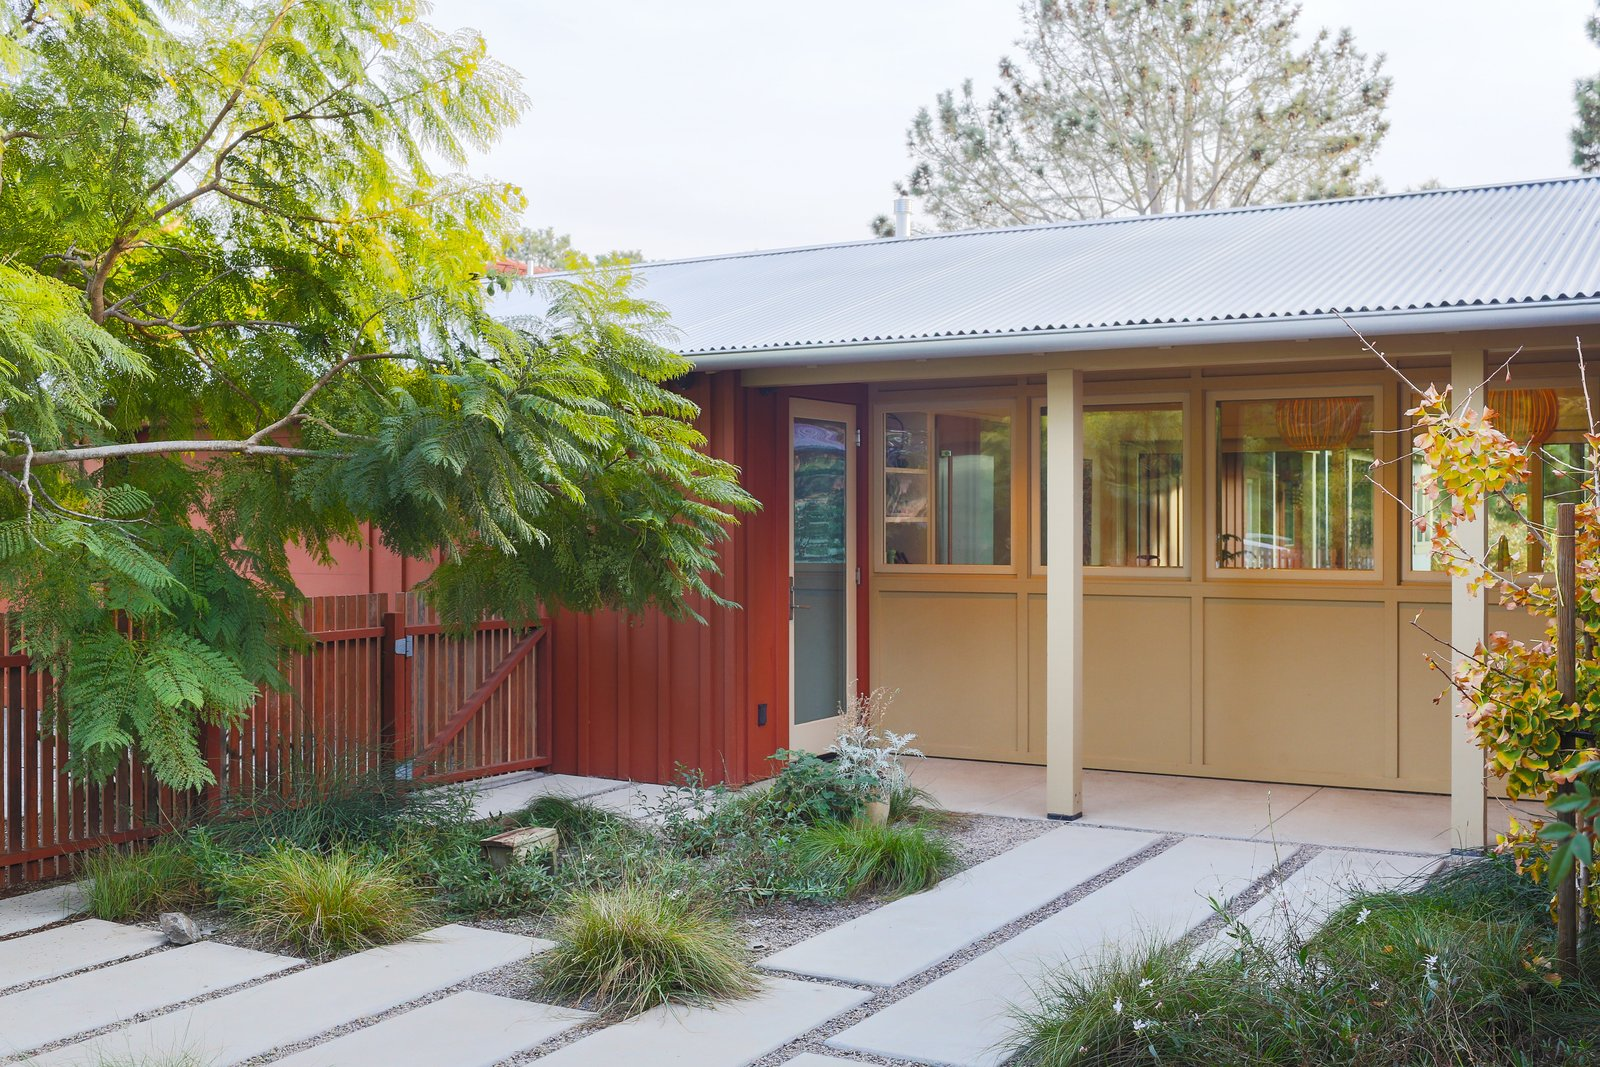 California Ranch Style Home Remodel - Easy Home Decorating Ideas